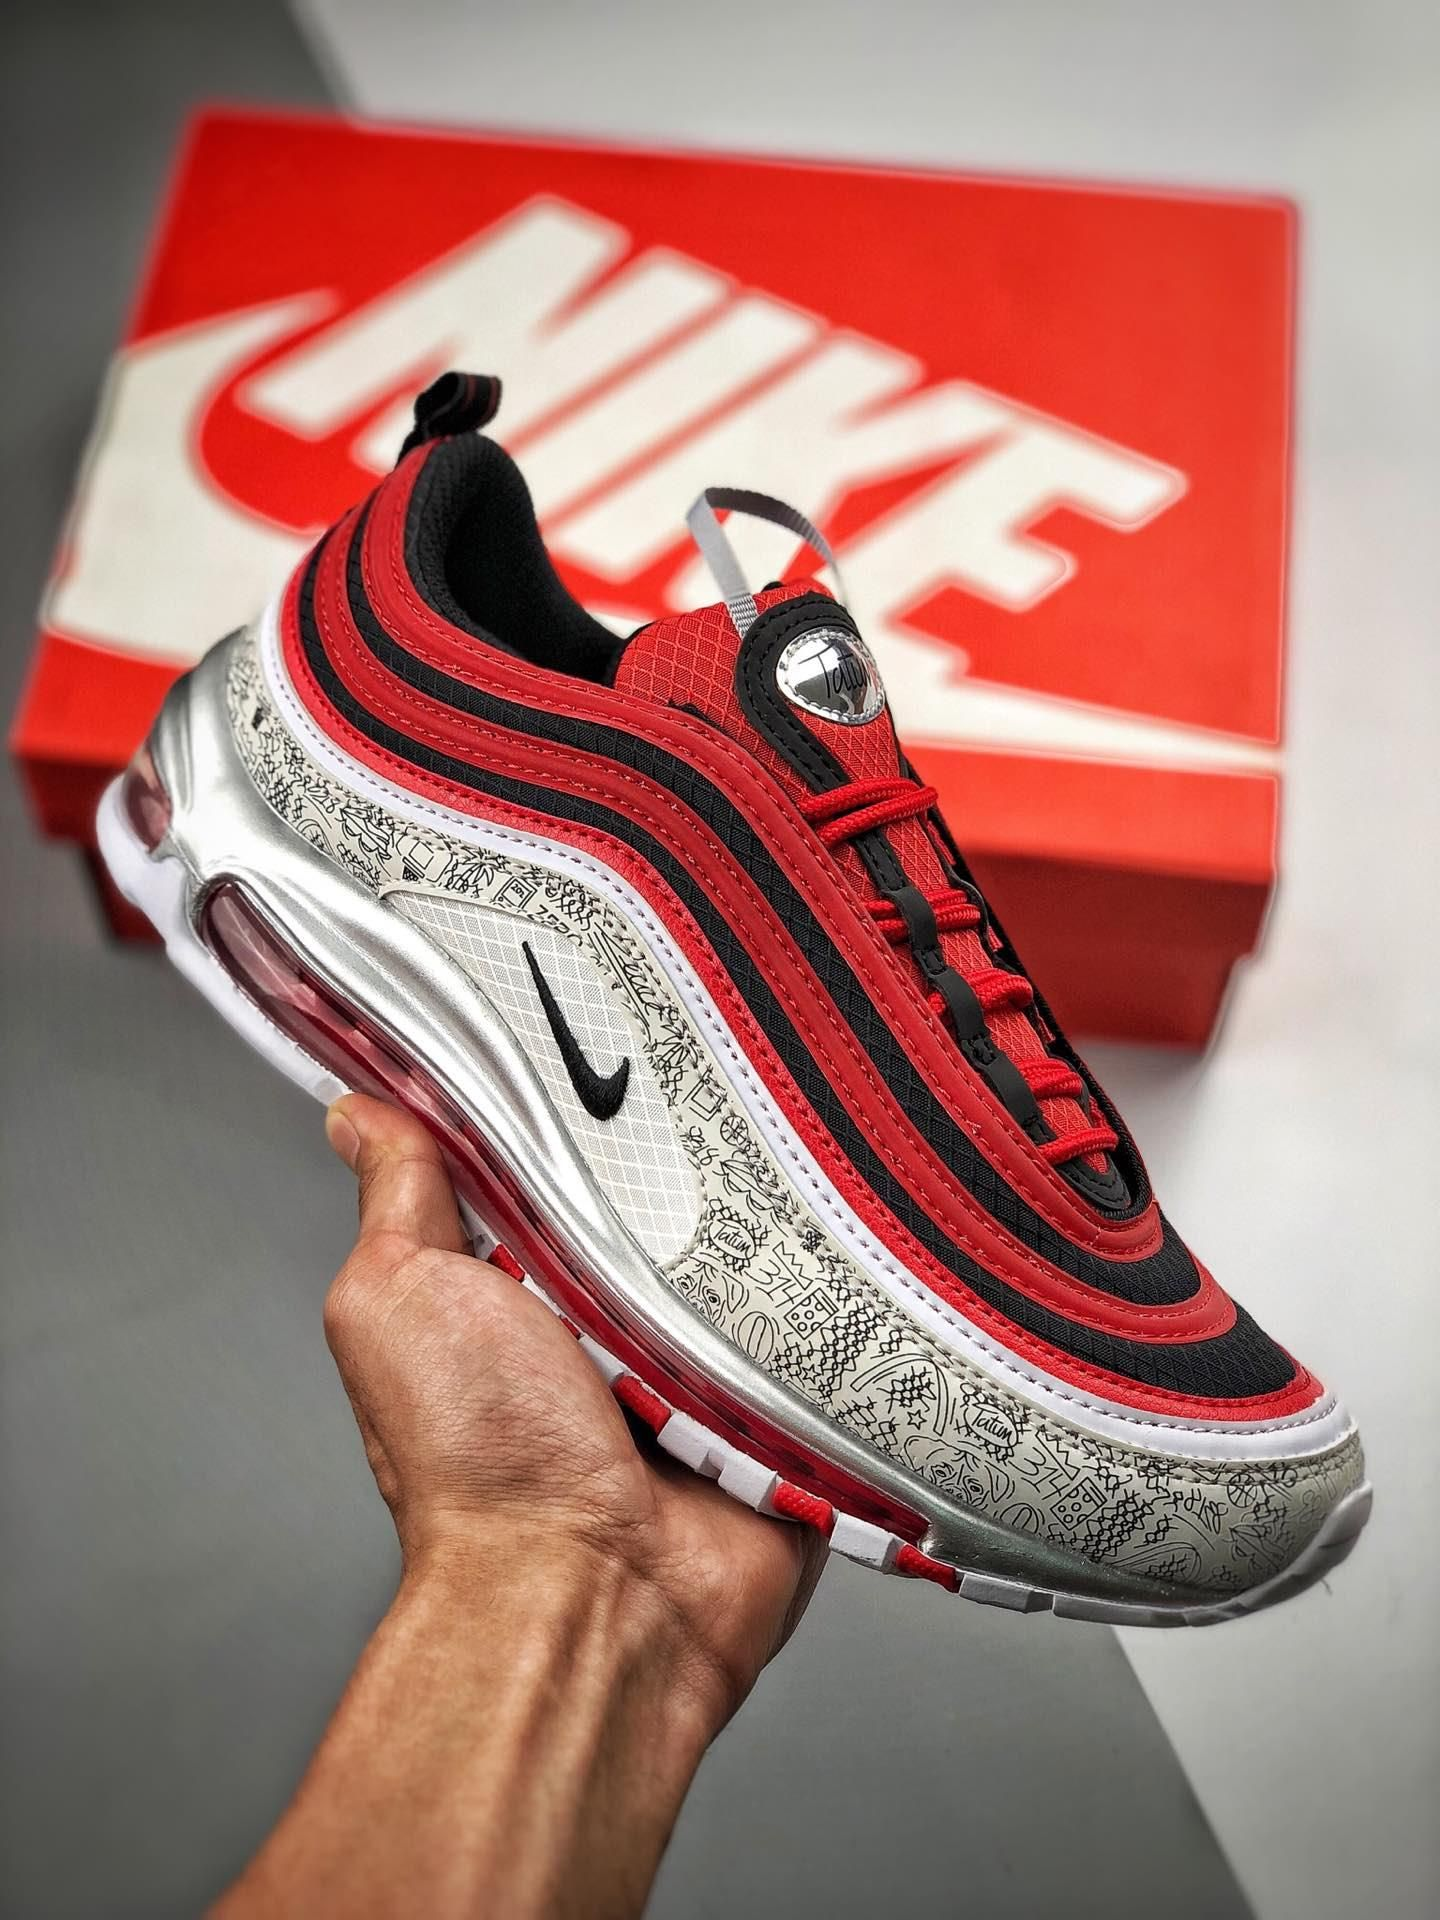 Nike Air Max 97 x Jayson Tatum CJ9780 600 in 2020 | Nike air